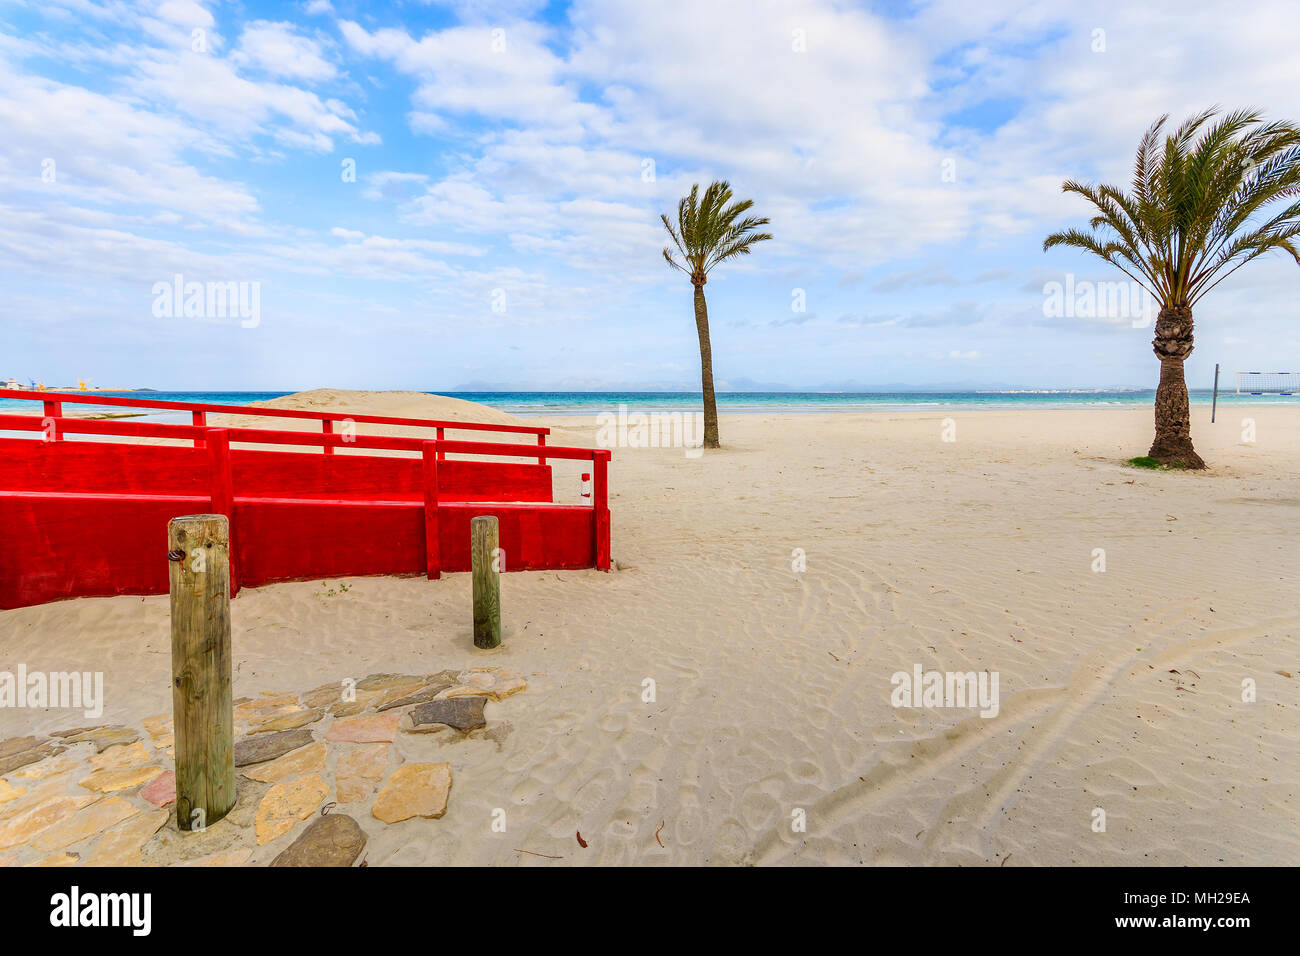 Red footbridge and palm trees on sandy Alcudia beach at early morning, Majorca island, Spain - Stock Image